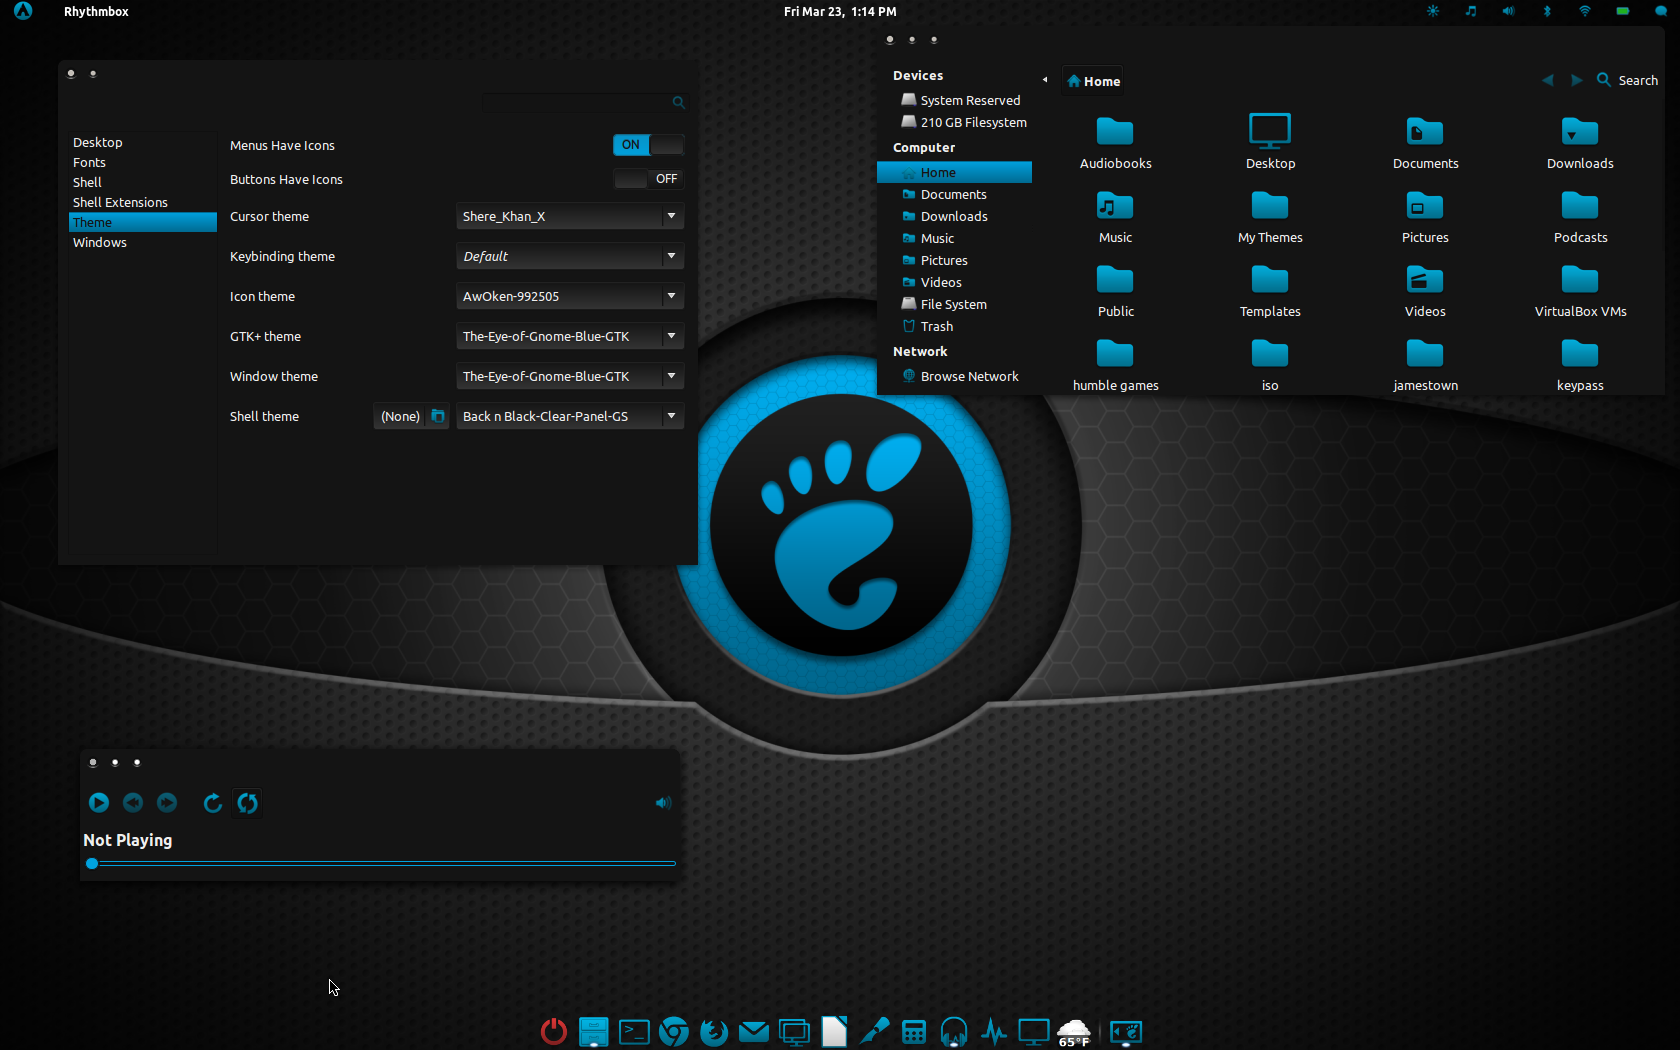 The Eye of Gnome Blue GTK by CraazyT